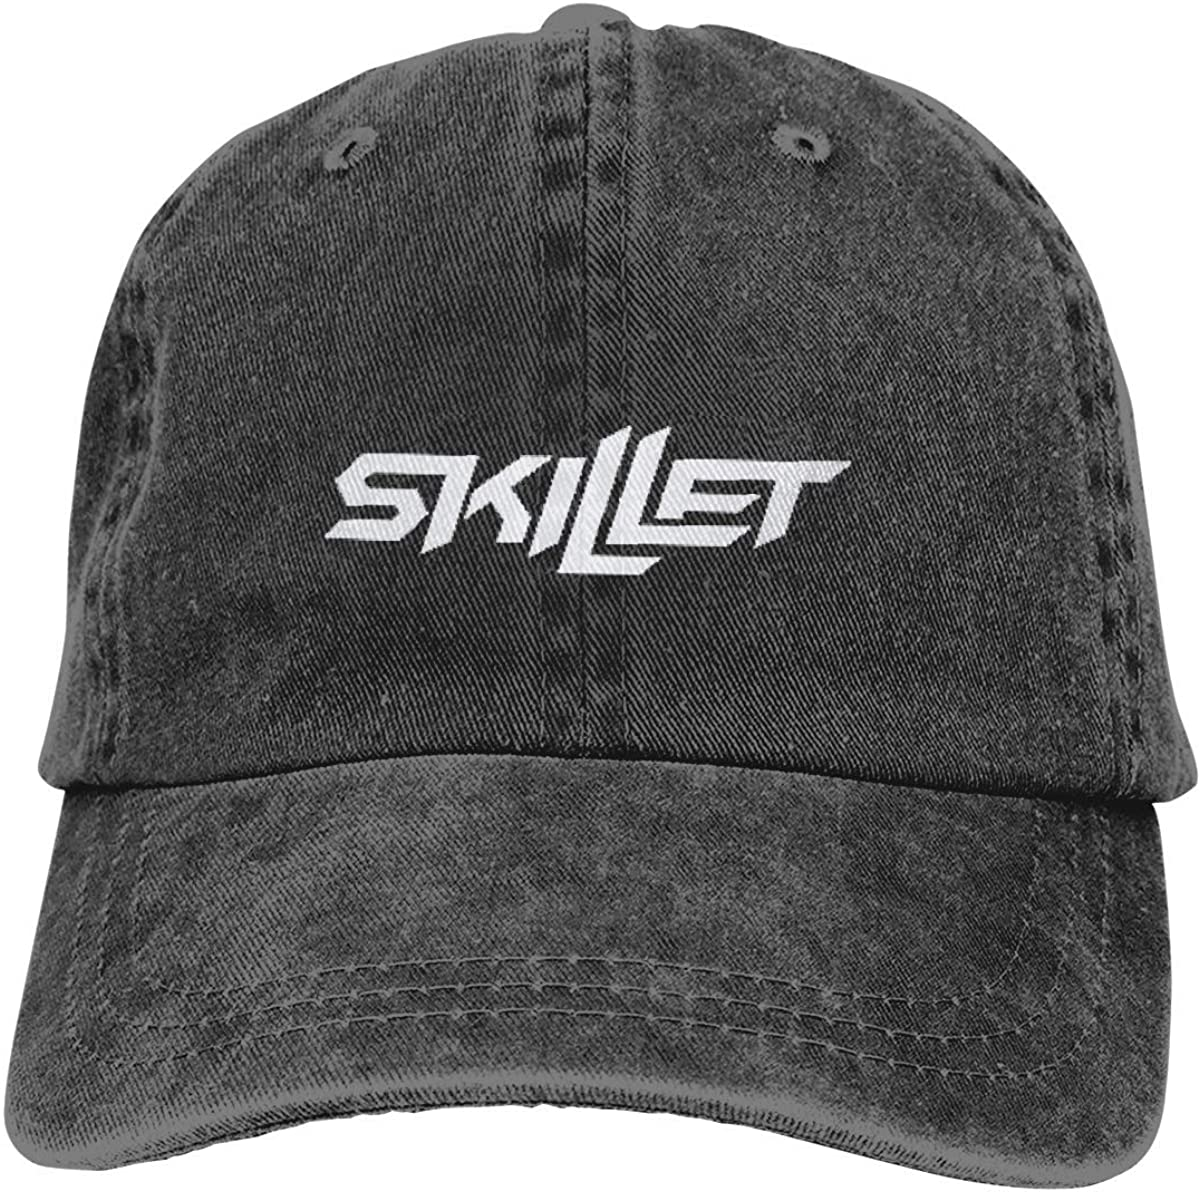 YINGSSMZ Skillet Sports Denim Cap Adjustable Snapback Casquettes Unisex Plain Baseball Cowboy Hat Black